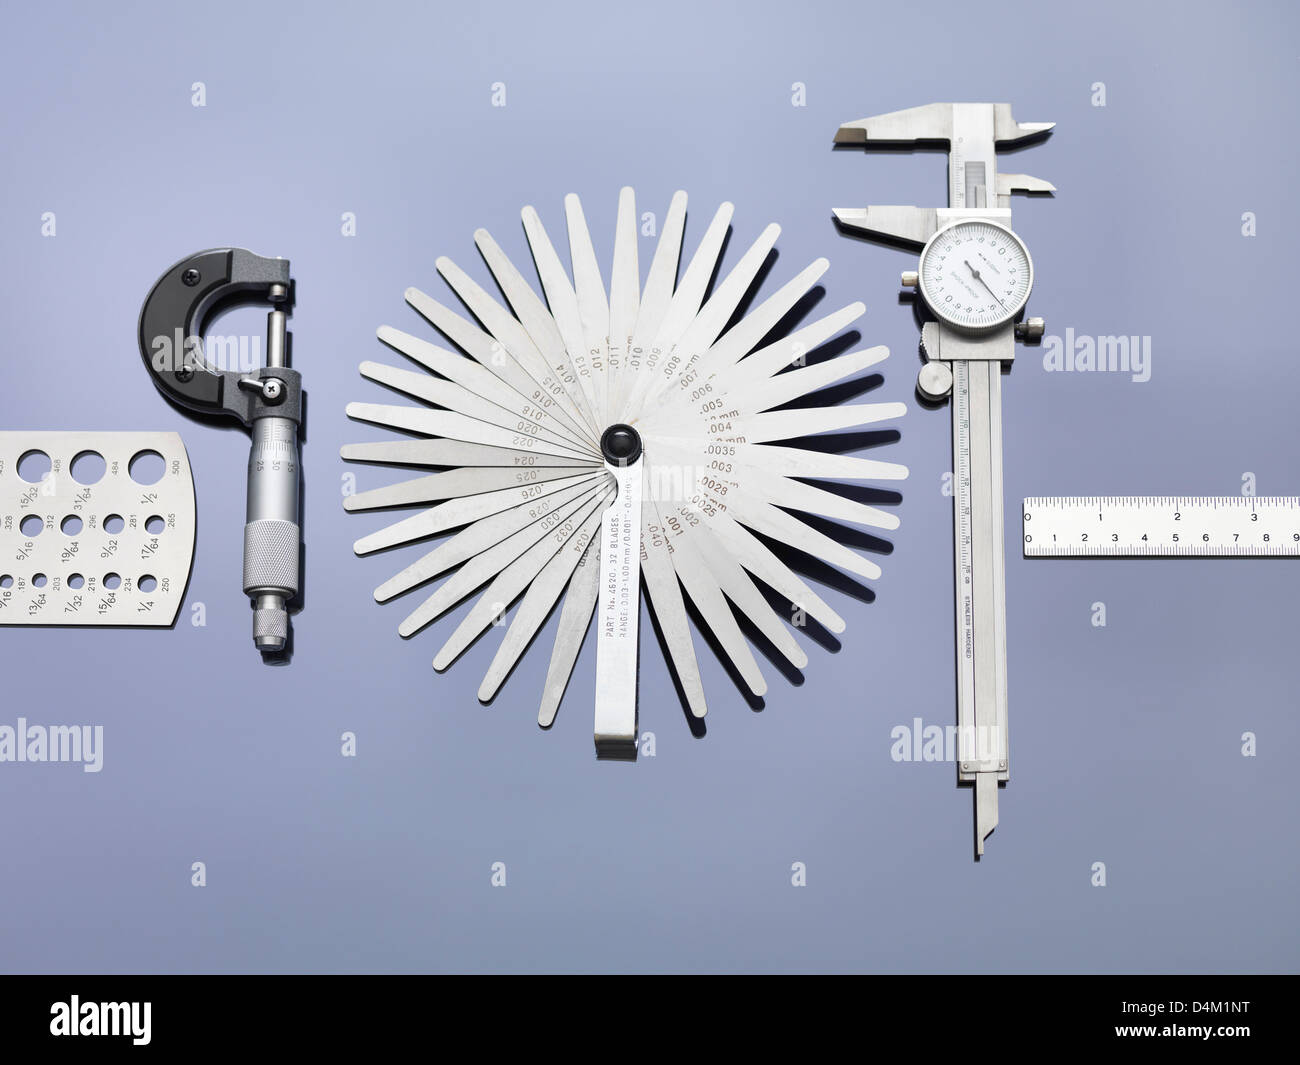 Engineering measurement tools used in Industry - Stock Image